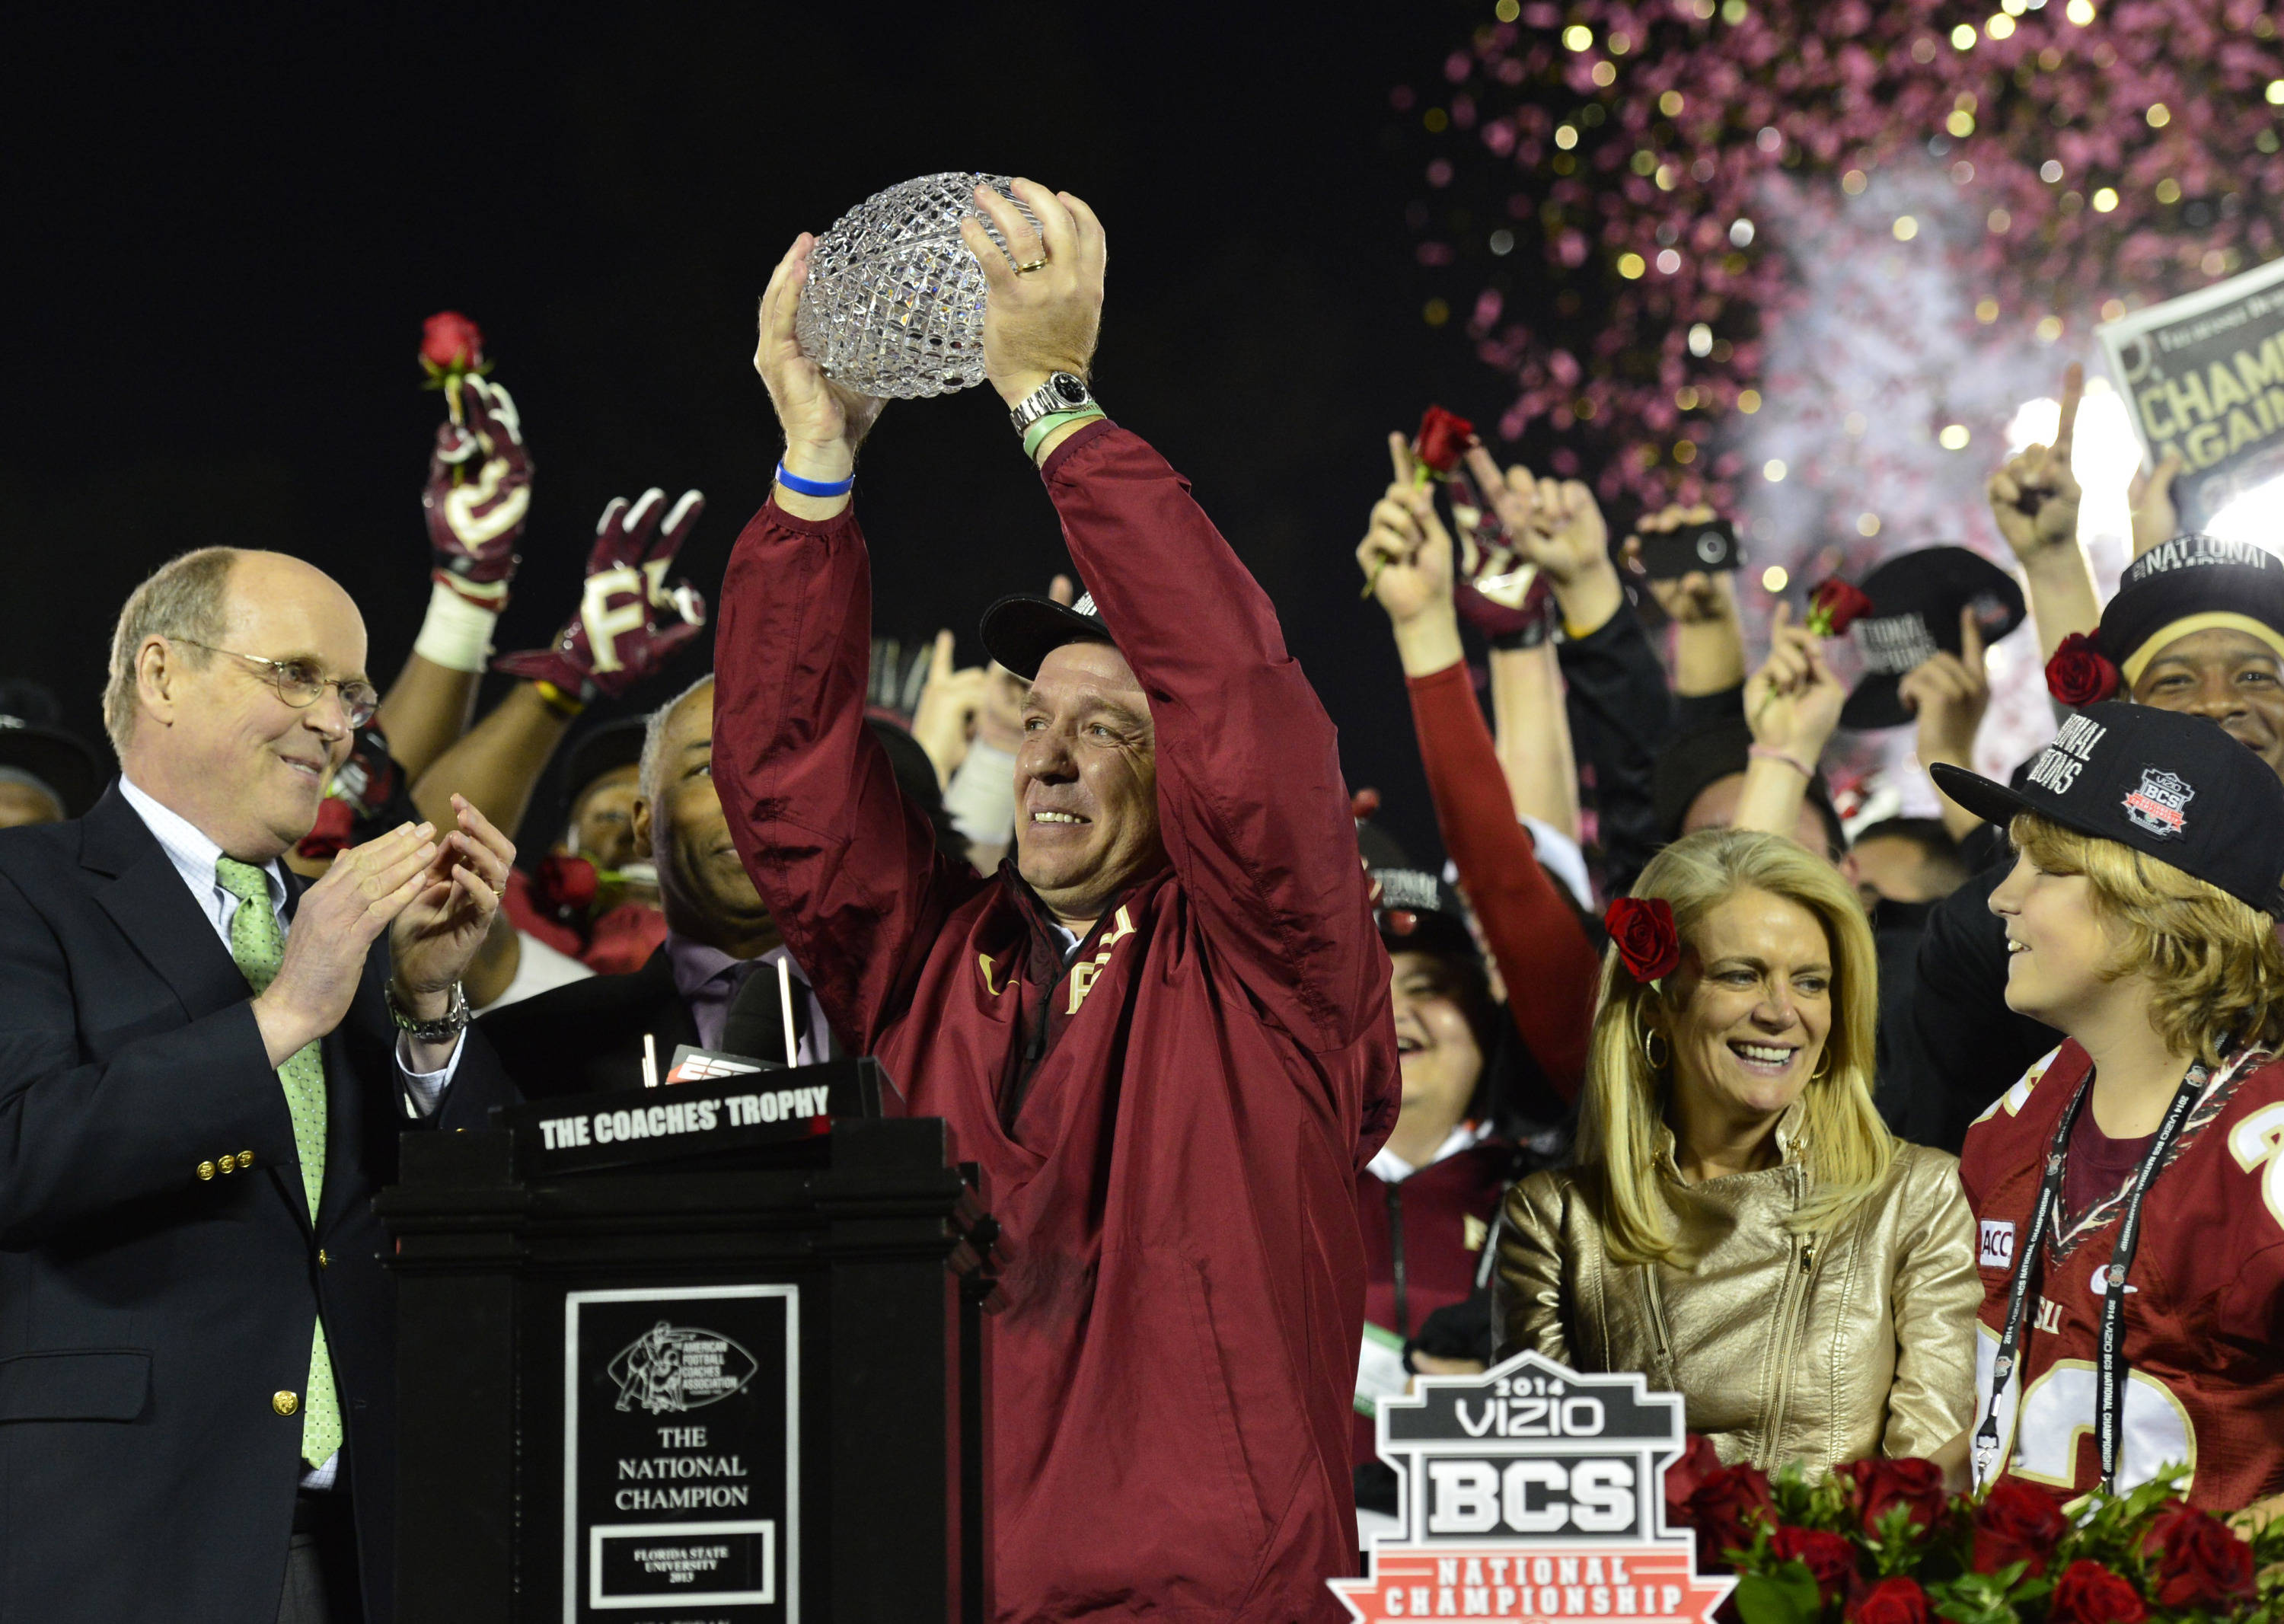 Jan 6, 2014; Pasadena, CA, USA; Florida State Seminoles head coach Jimbo Fisher celebrates with the Coaches Trophy after winning the 2014 BCS National Championship game against Auburn Tigers 34-31 at the Rose Bowl.  Mandatory Credit: Richard Mackson-USA TODAY Sports